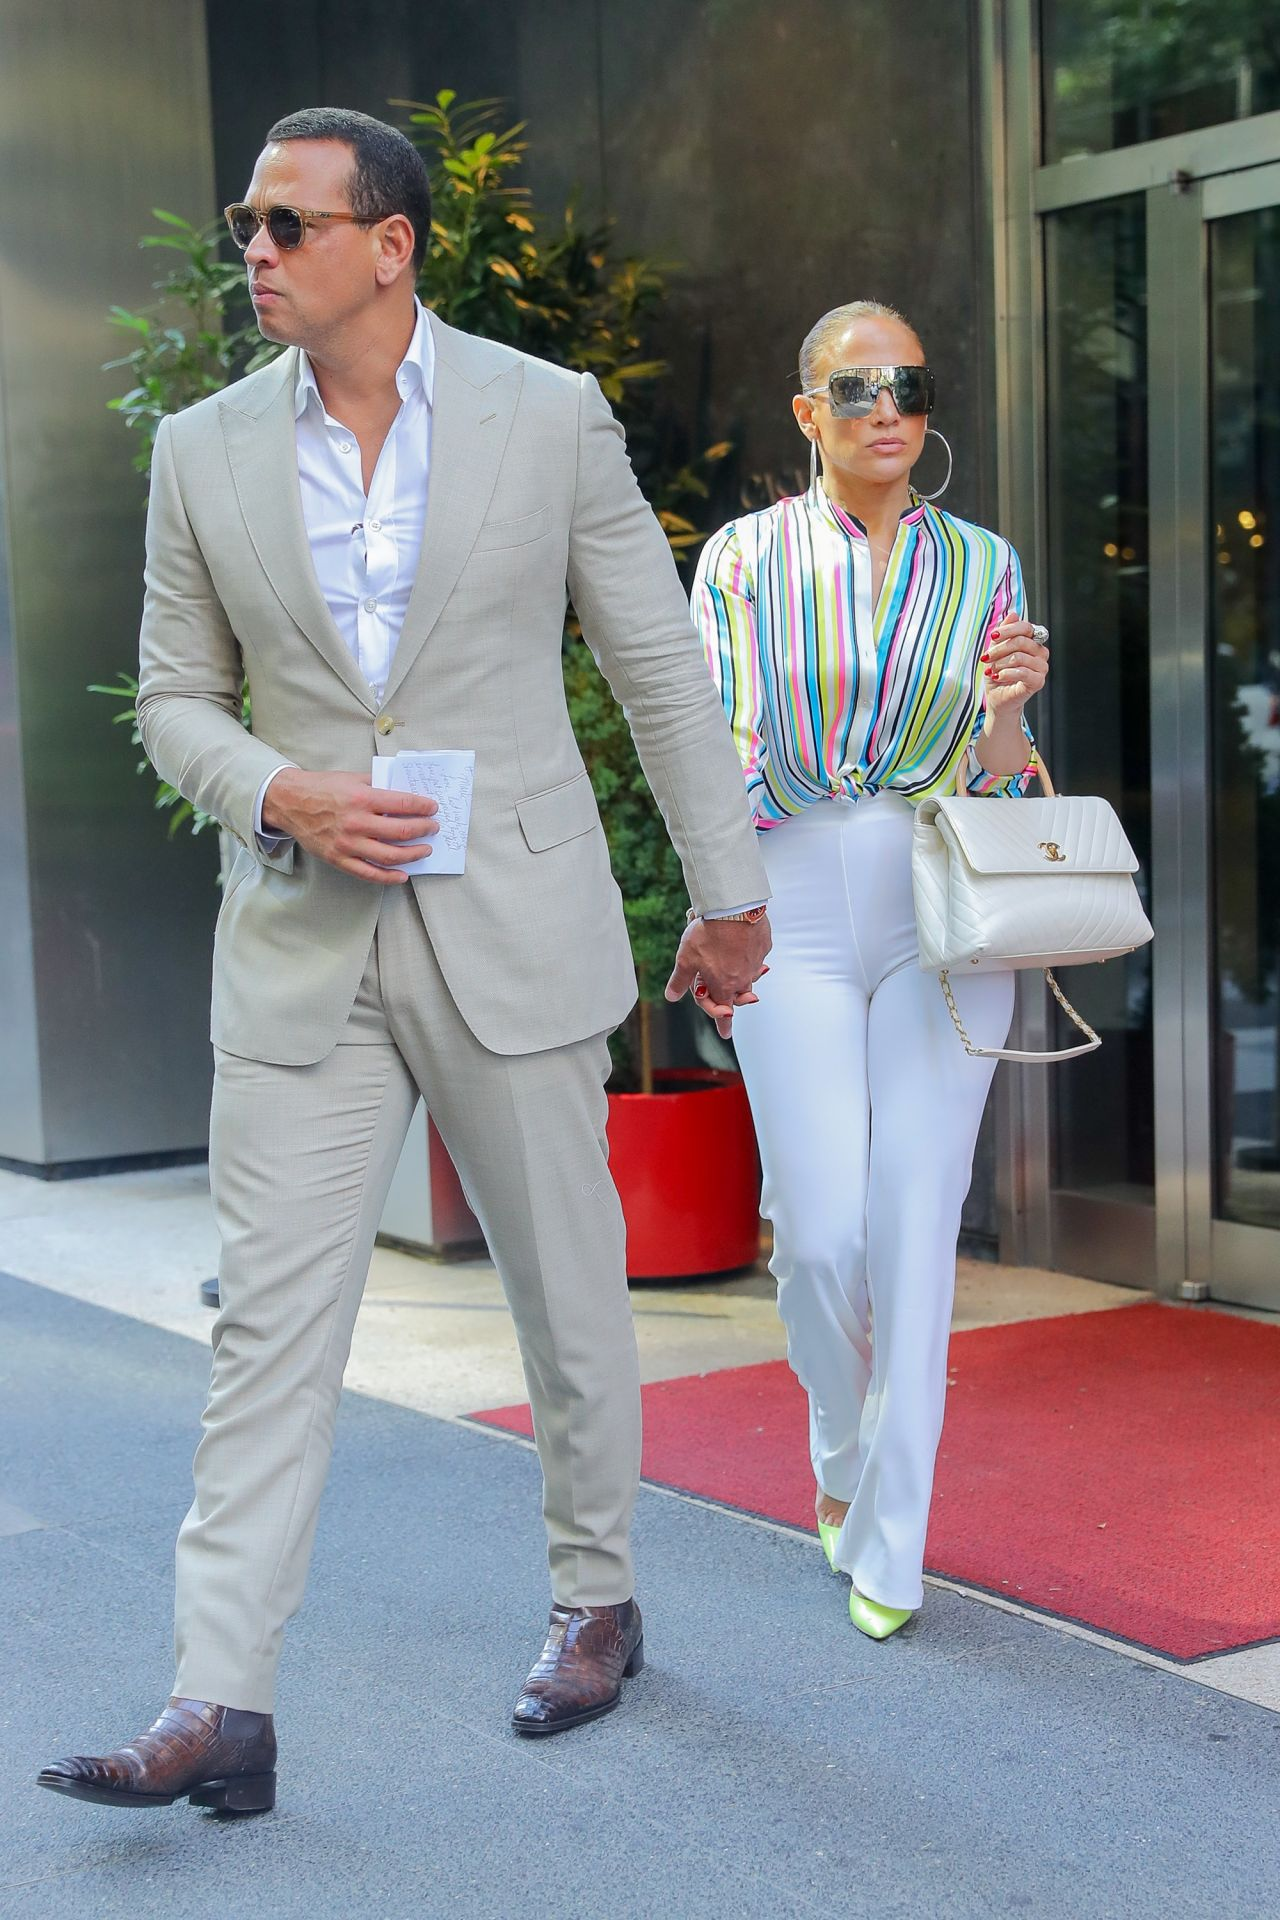 jennifer-lopez-and-alex-rodriguez-leaving-the-casa-lever-in-nyc-06-29-2018-2.jpg